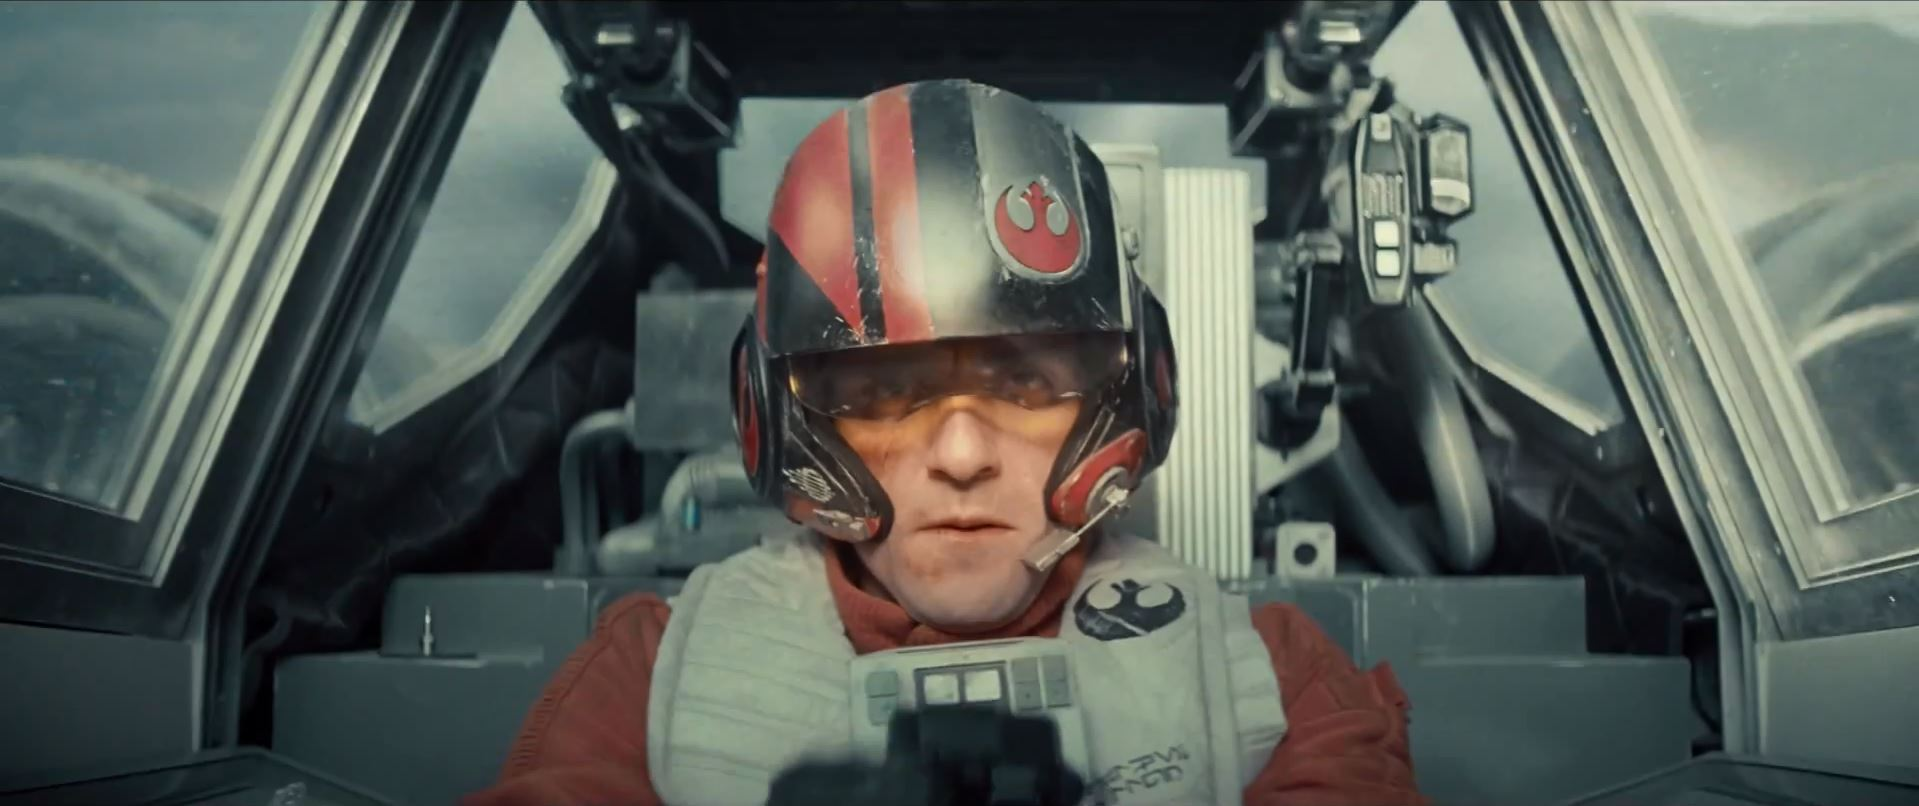 The X Wing Pilot From The Trailer Played By Oscar Isaac Is Poe in addition Serie Ancoras Parte 3 Tatuagens also Dream Quotes Pinterest further Film Border   Film Strip Frame Border further 7ljon6. on oscar cute quotes with the word